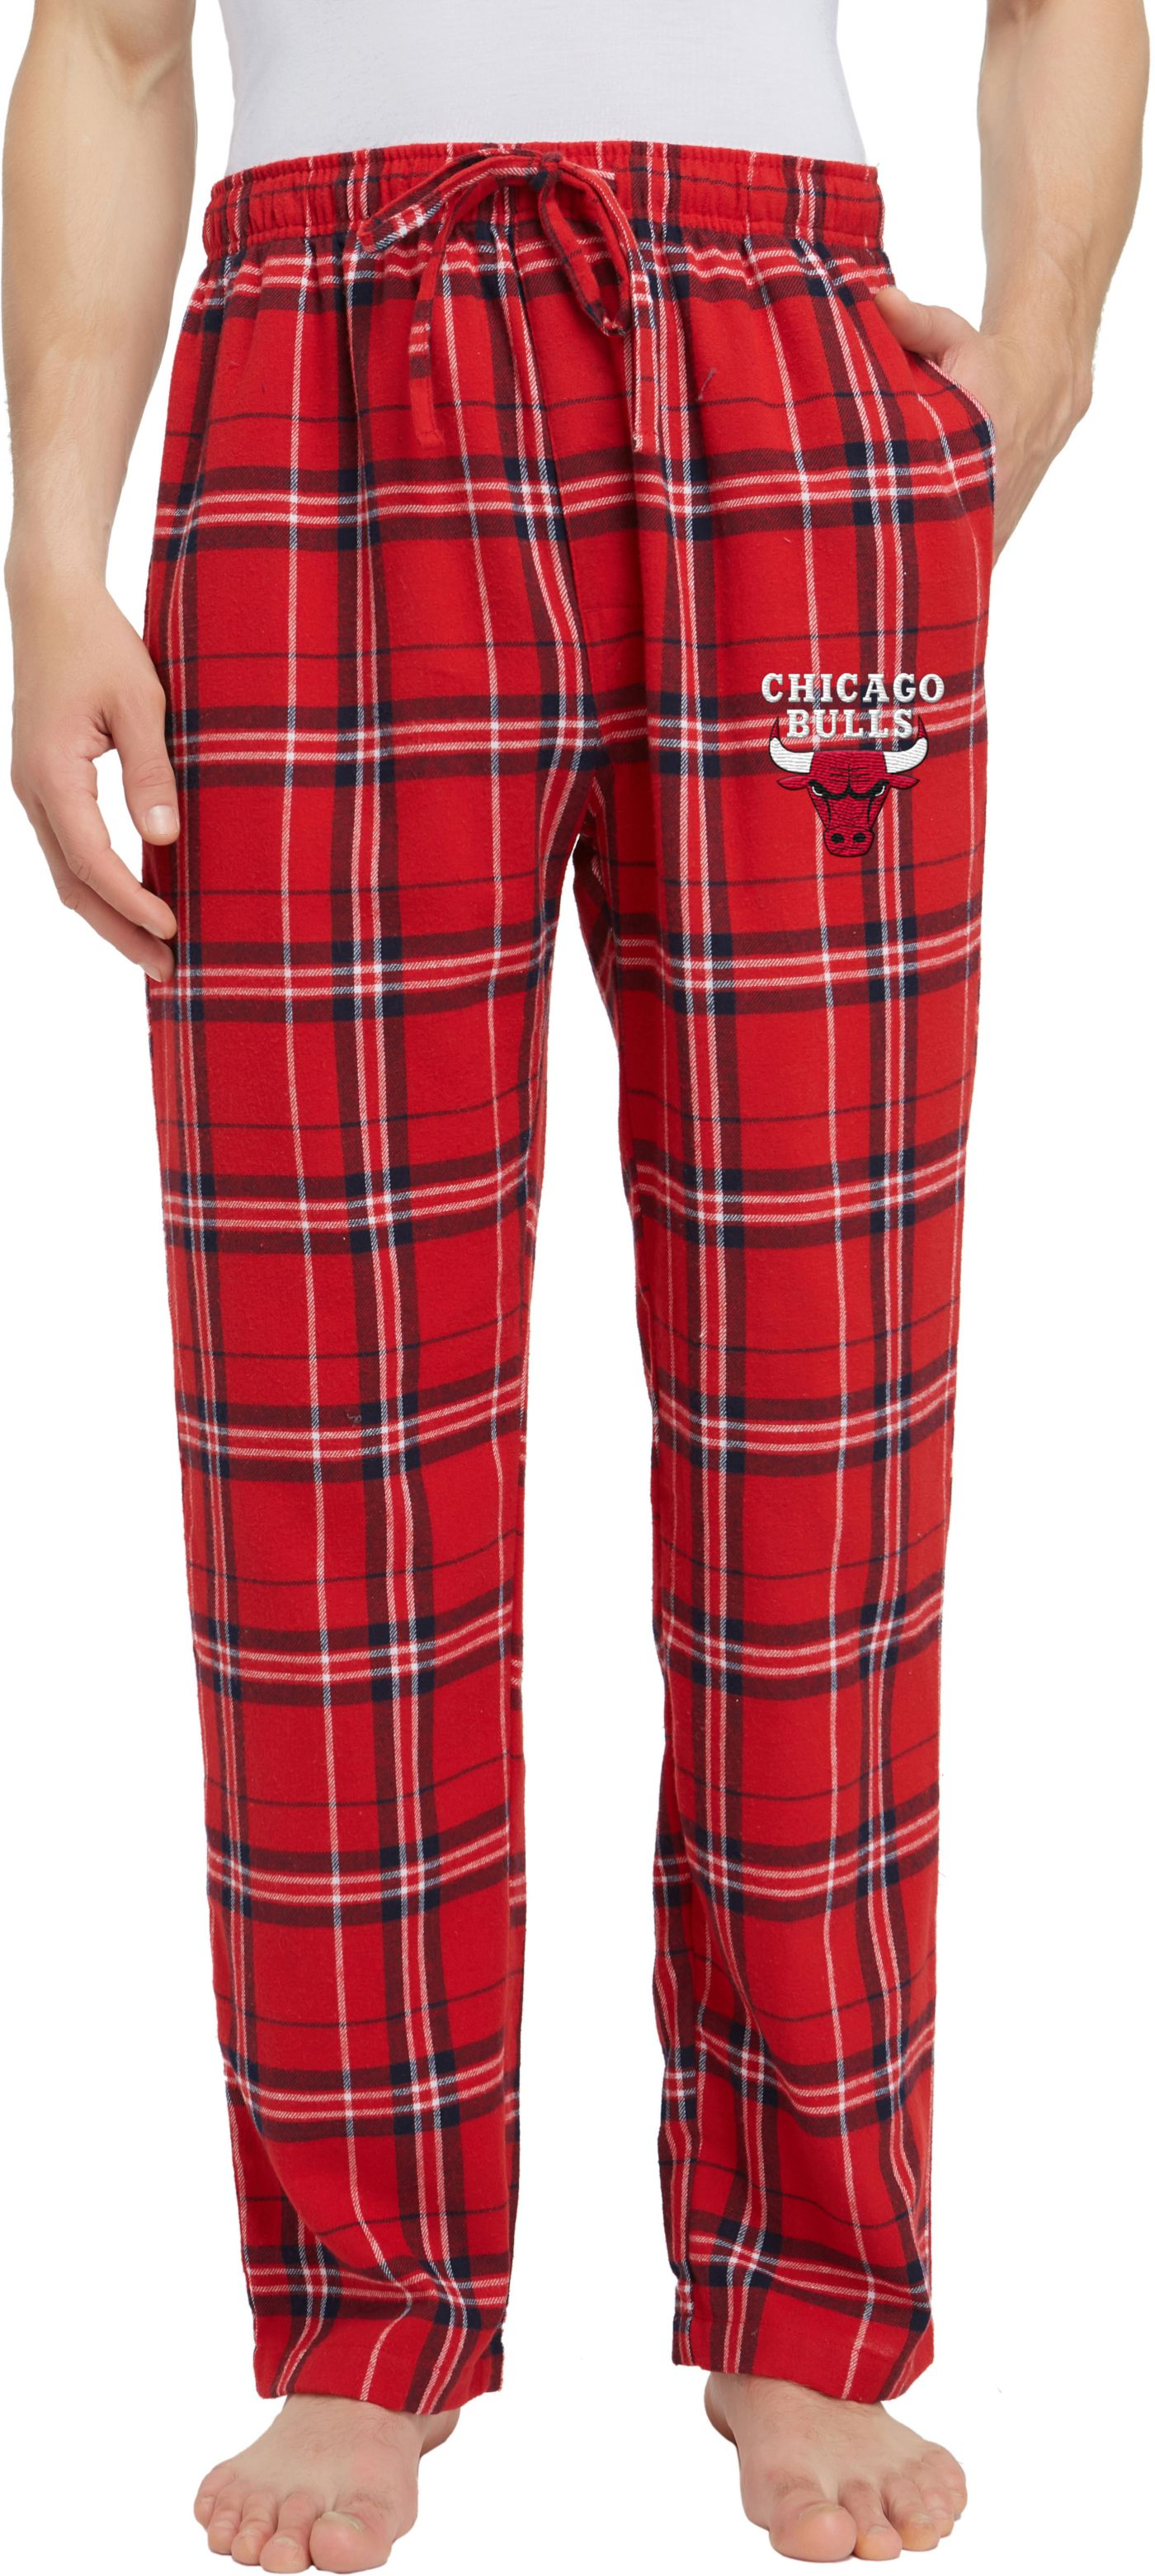 Concepts Sport Men's Chicago Bulls Plaid Flannel Pajama Pants